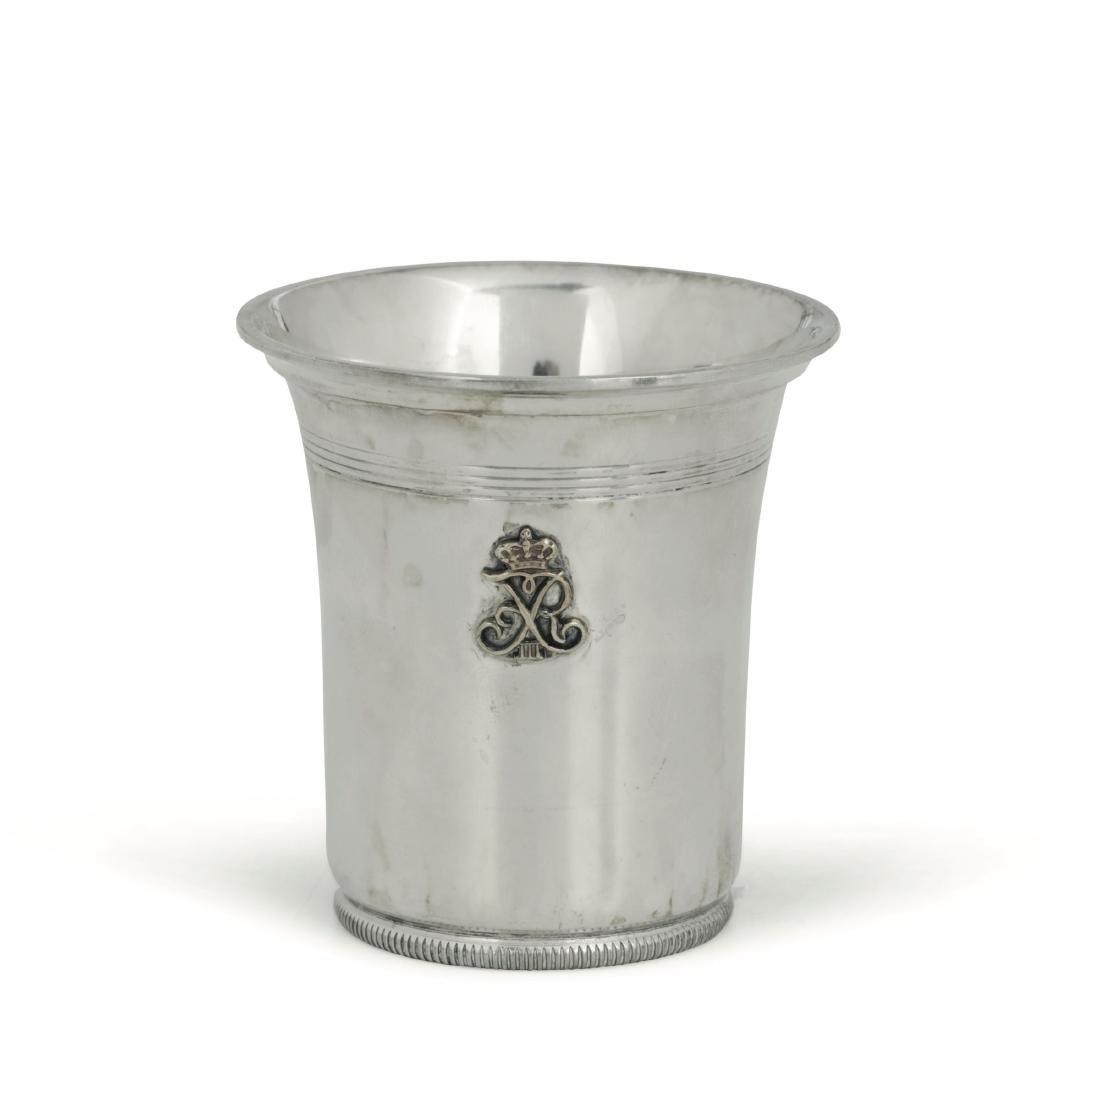 A glass in embossed and chiselled silver with a crowned